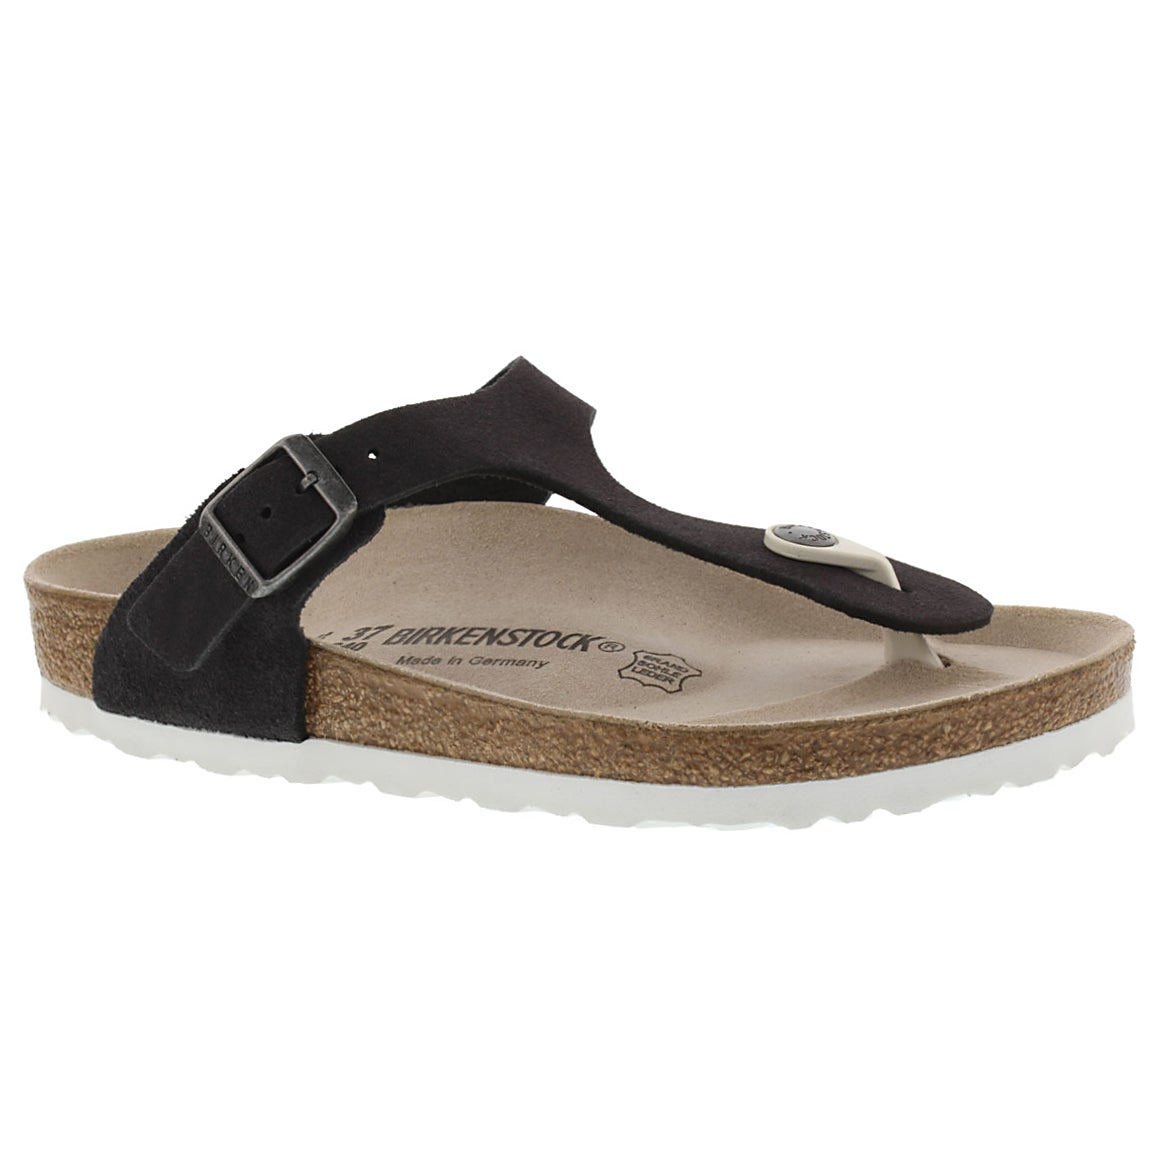 Lds Gizeh charcoal suede thong sandal